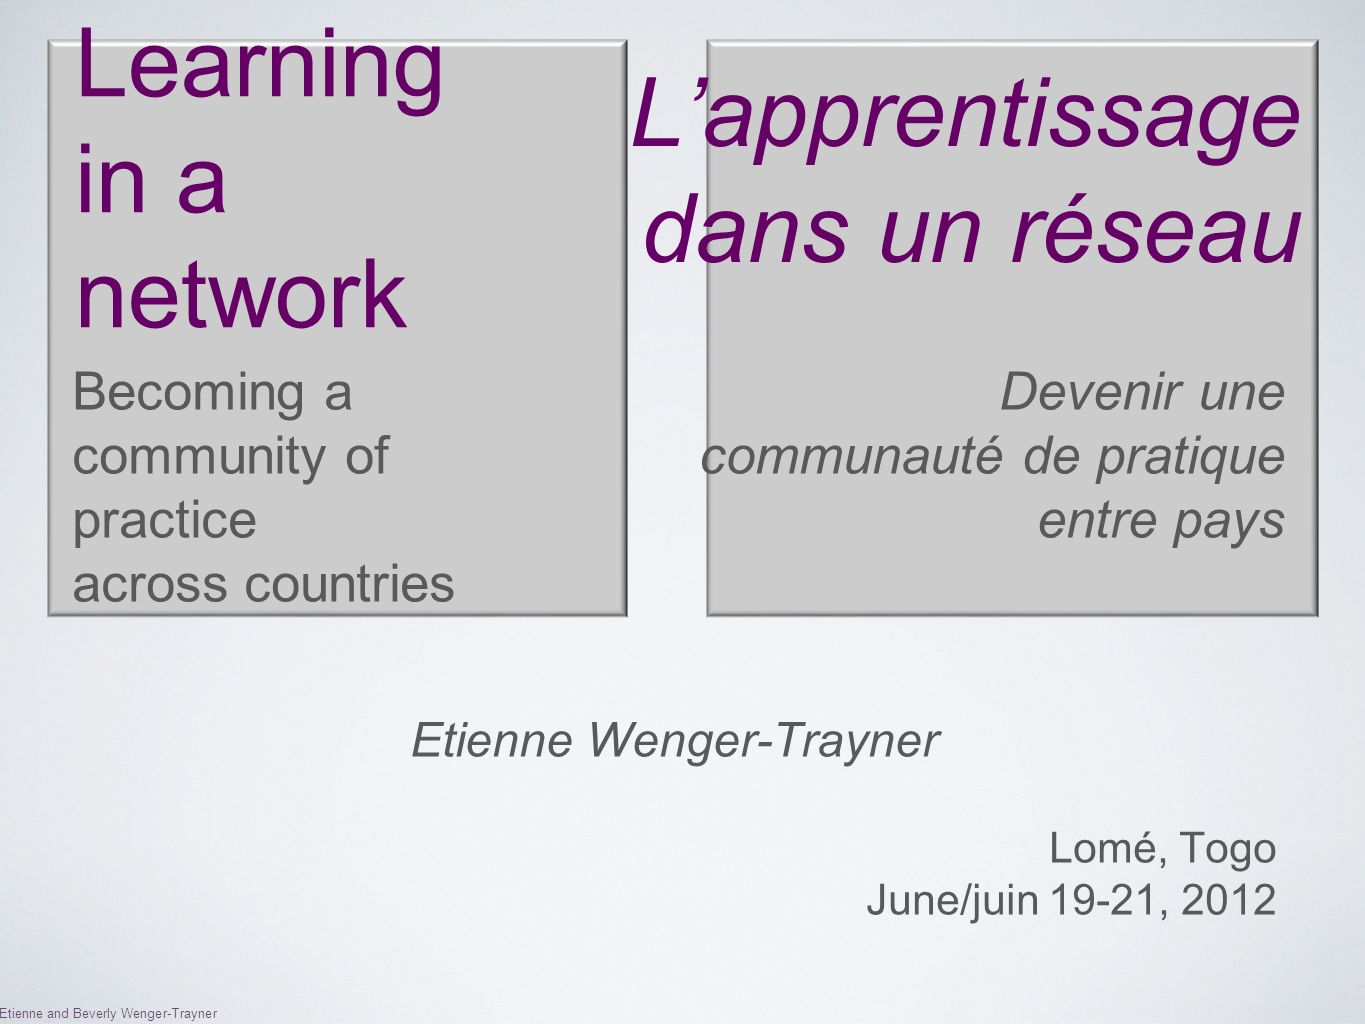 Etienne and Beverly Wenger-Trayner Learning in a network Becoming a community of practice across countries Etienne Wenger-Trayner Lomé, Togo June/juin 19-21, 2012 Devenir une communauté de pratique entre pays Lapprentissage dans un réseau